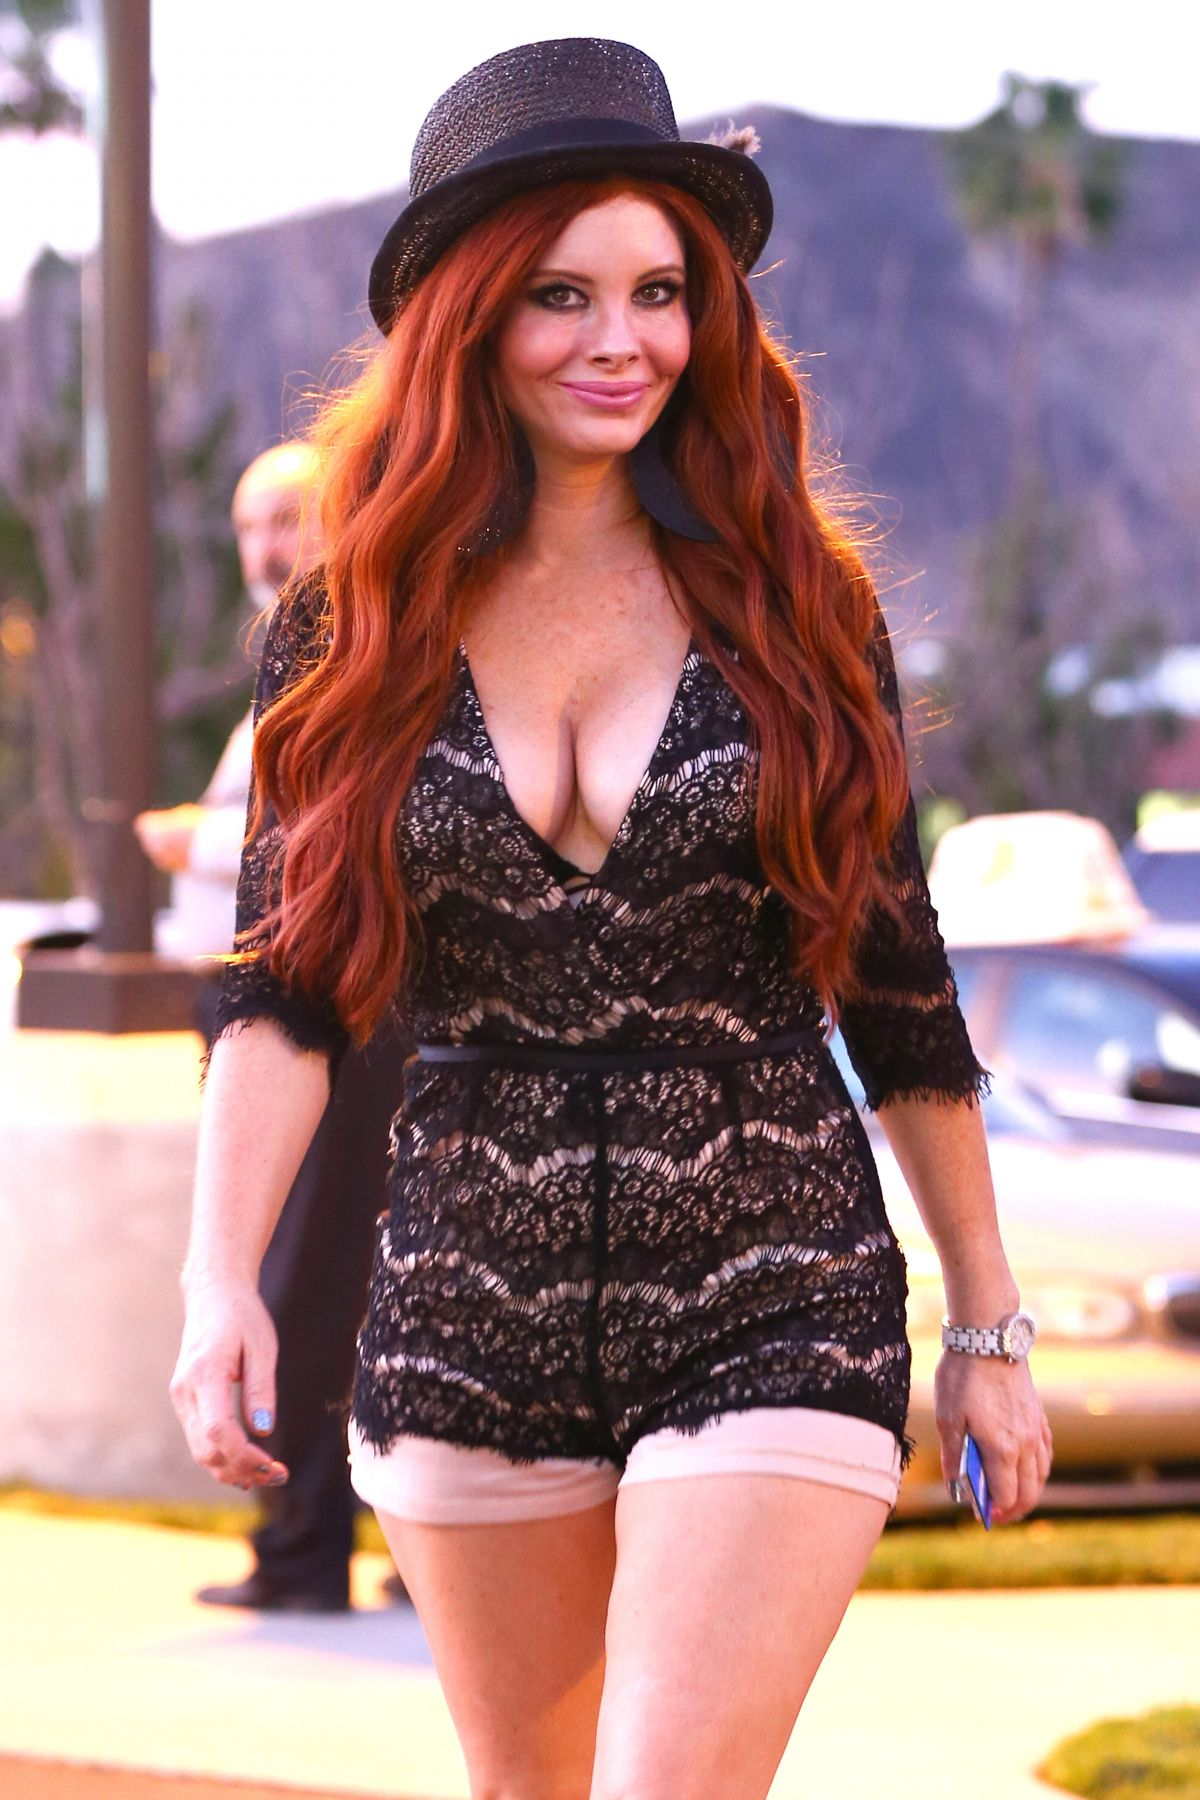 Young Phoebe Price nude (57 foto and video), Topless, Leaked, Feet, cameltoe 2006